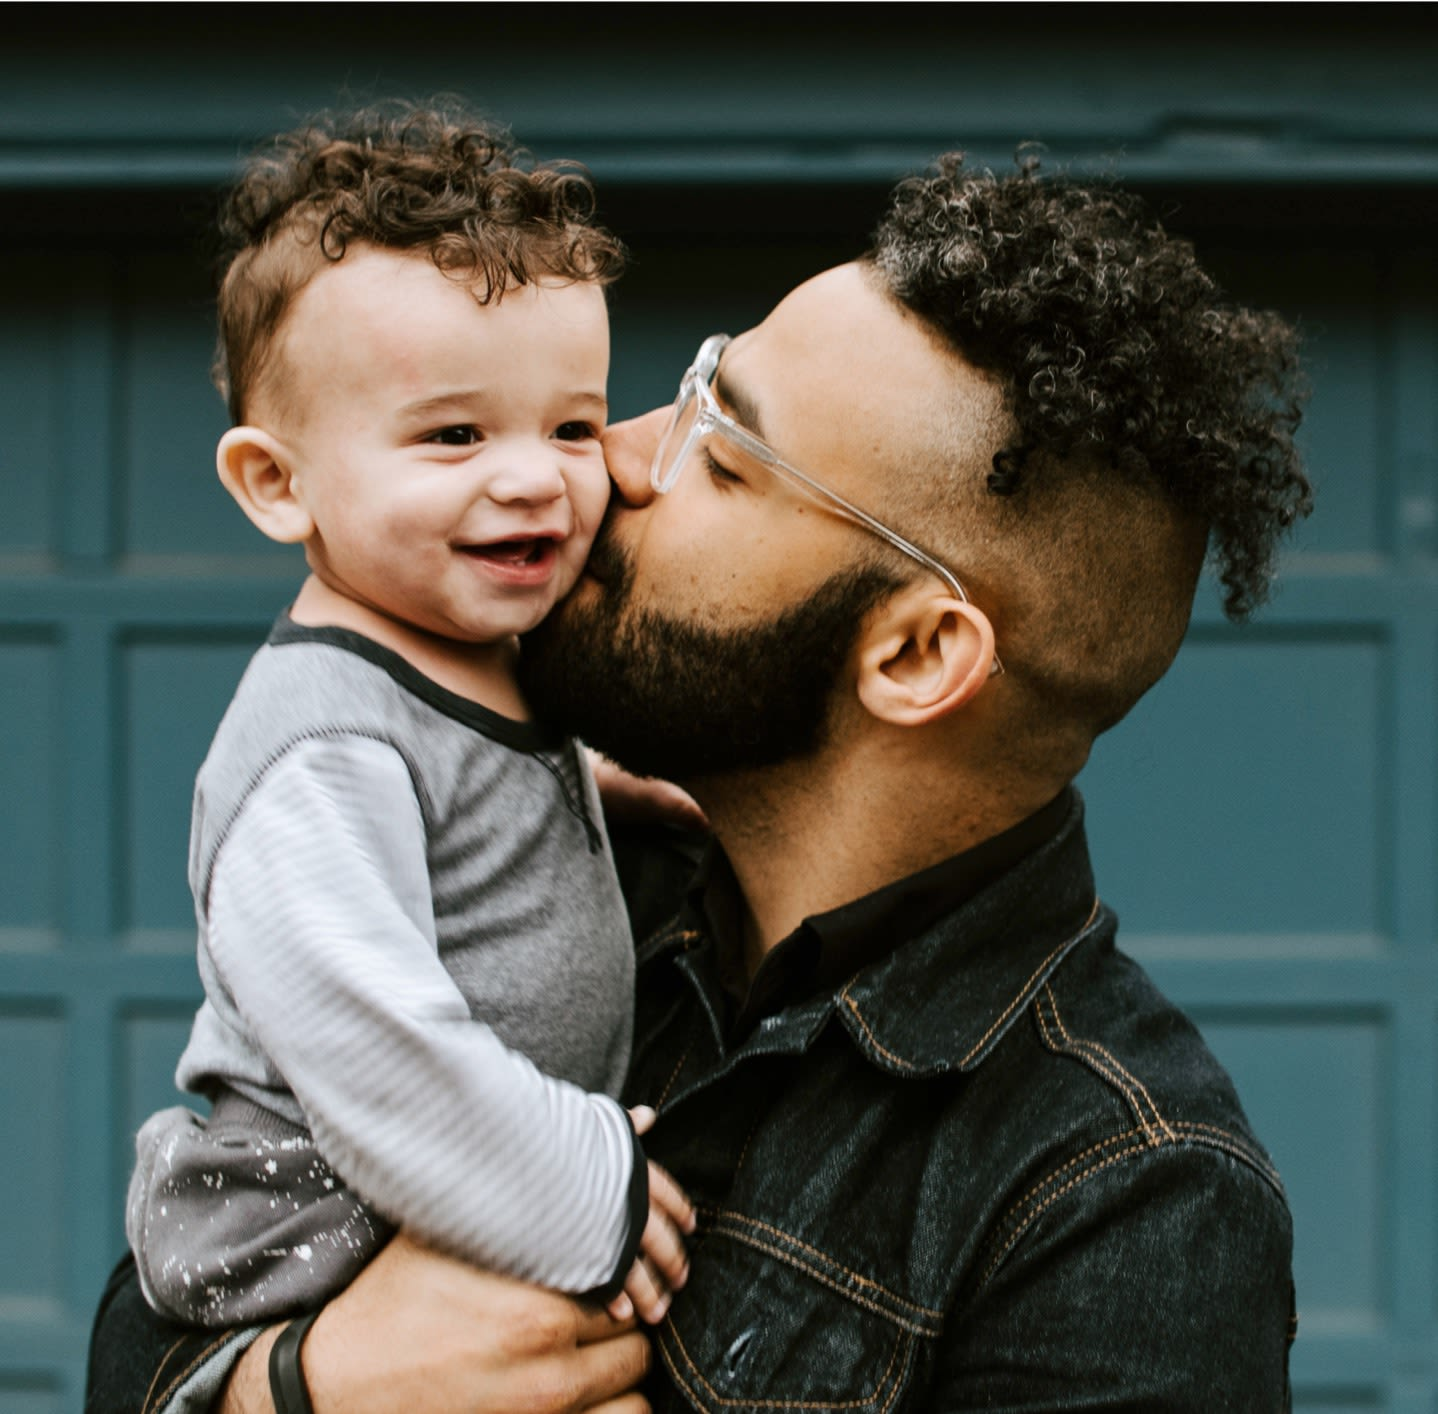 Man with curly hair and glasses holding a toddler boy with curly hair in his arms and kissing him on the cheek